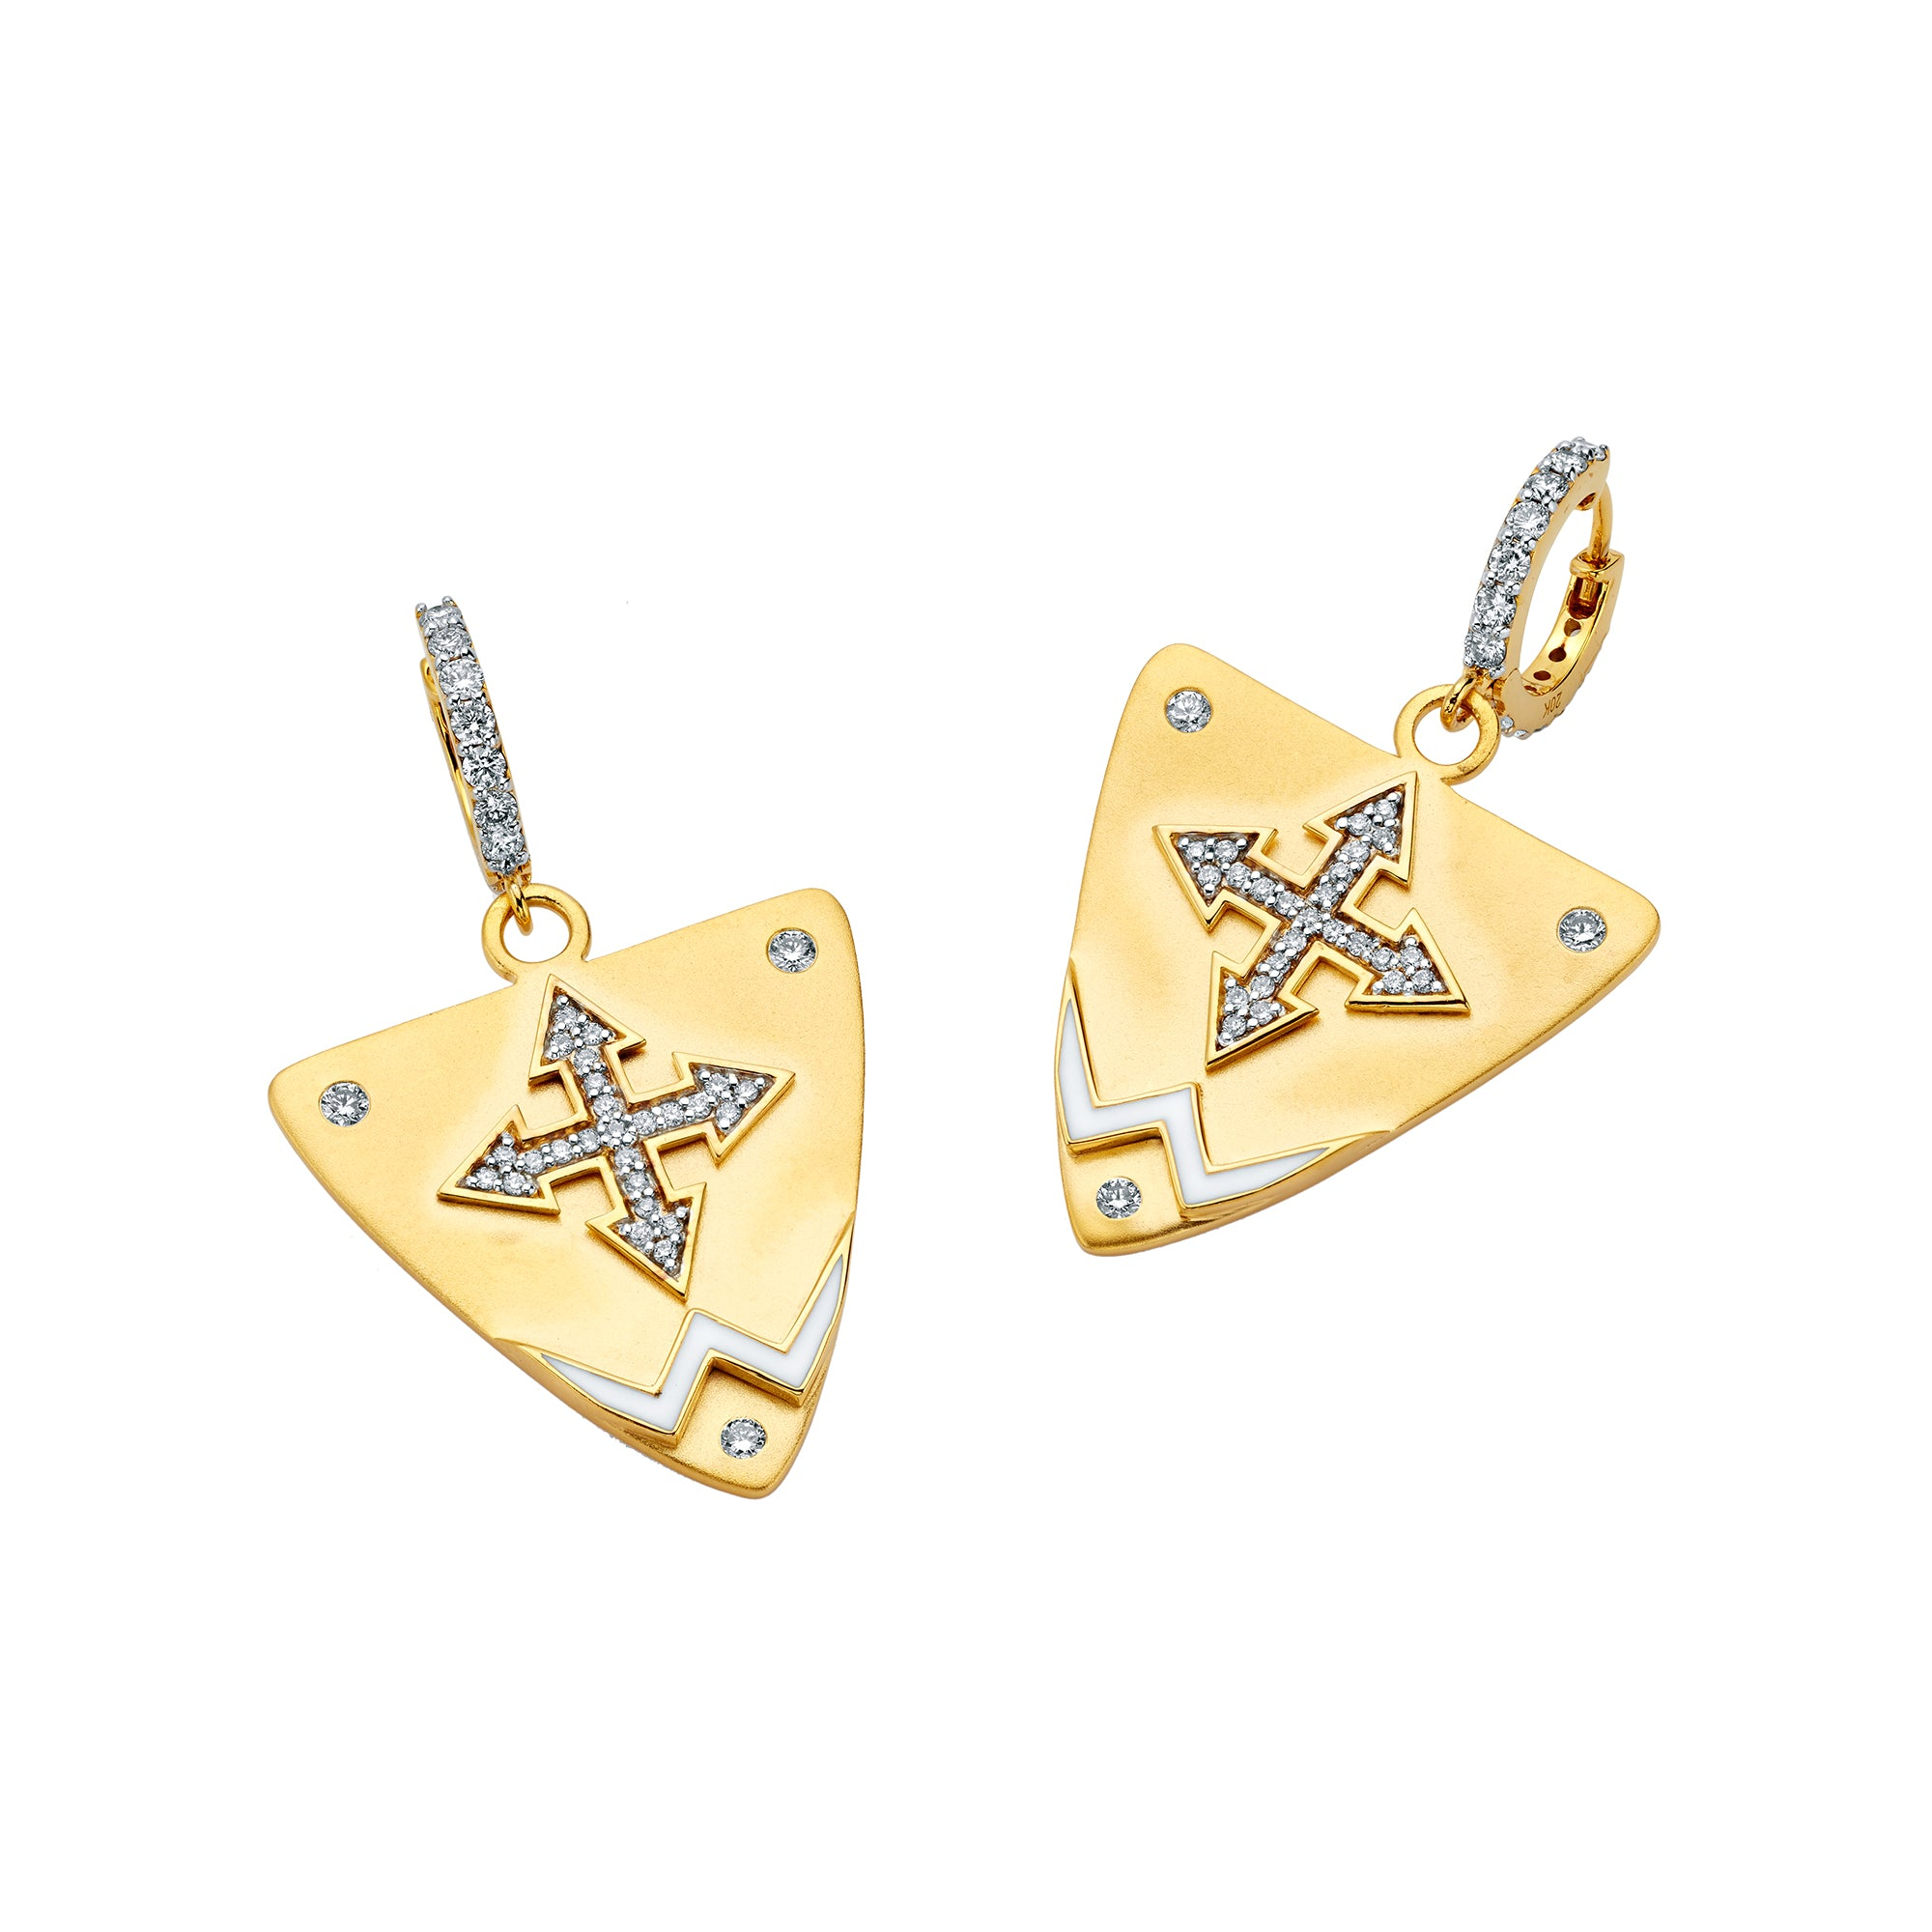 Gold Enamel White Diamond Guitar Pick Cross Earrings by Buddha Mama for Broken English Jewelry